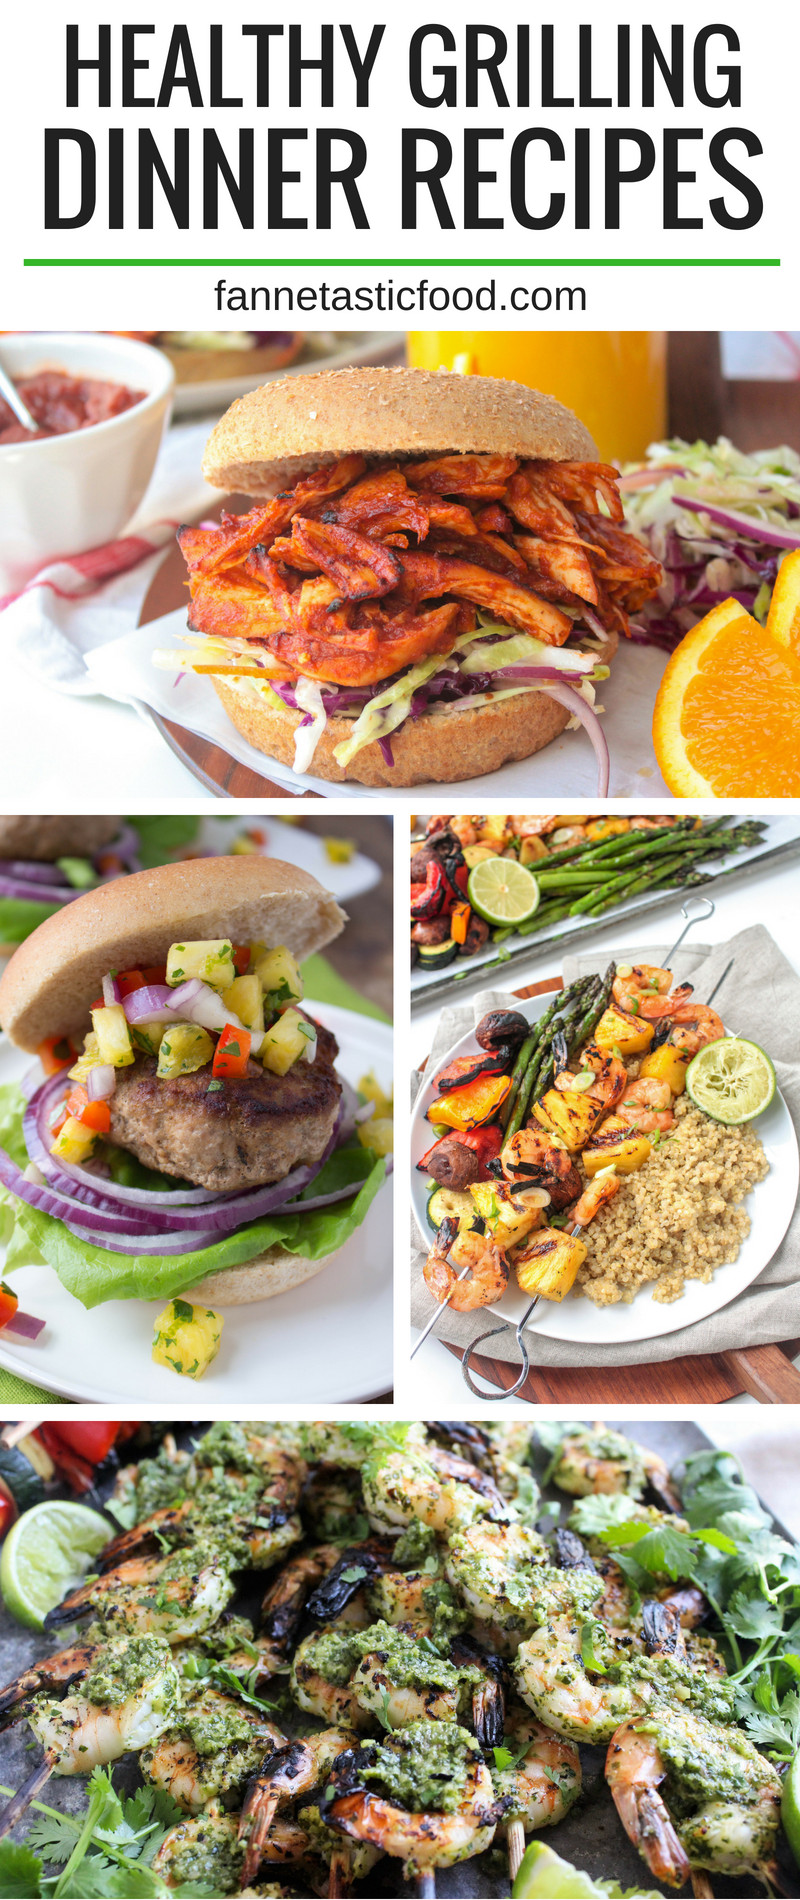 Healthy Grilled Dinners  Healthy Grilling Dinner Recipes fANNEtastic food